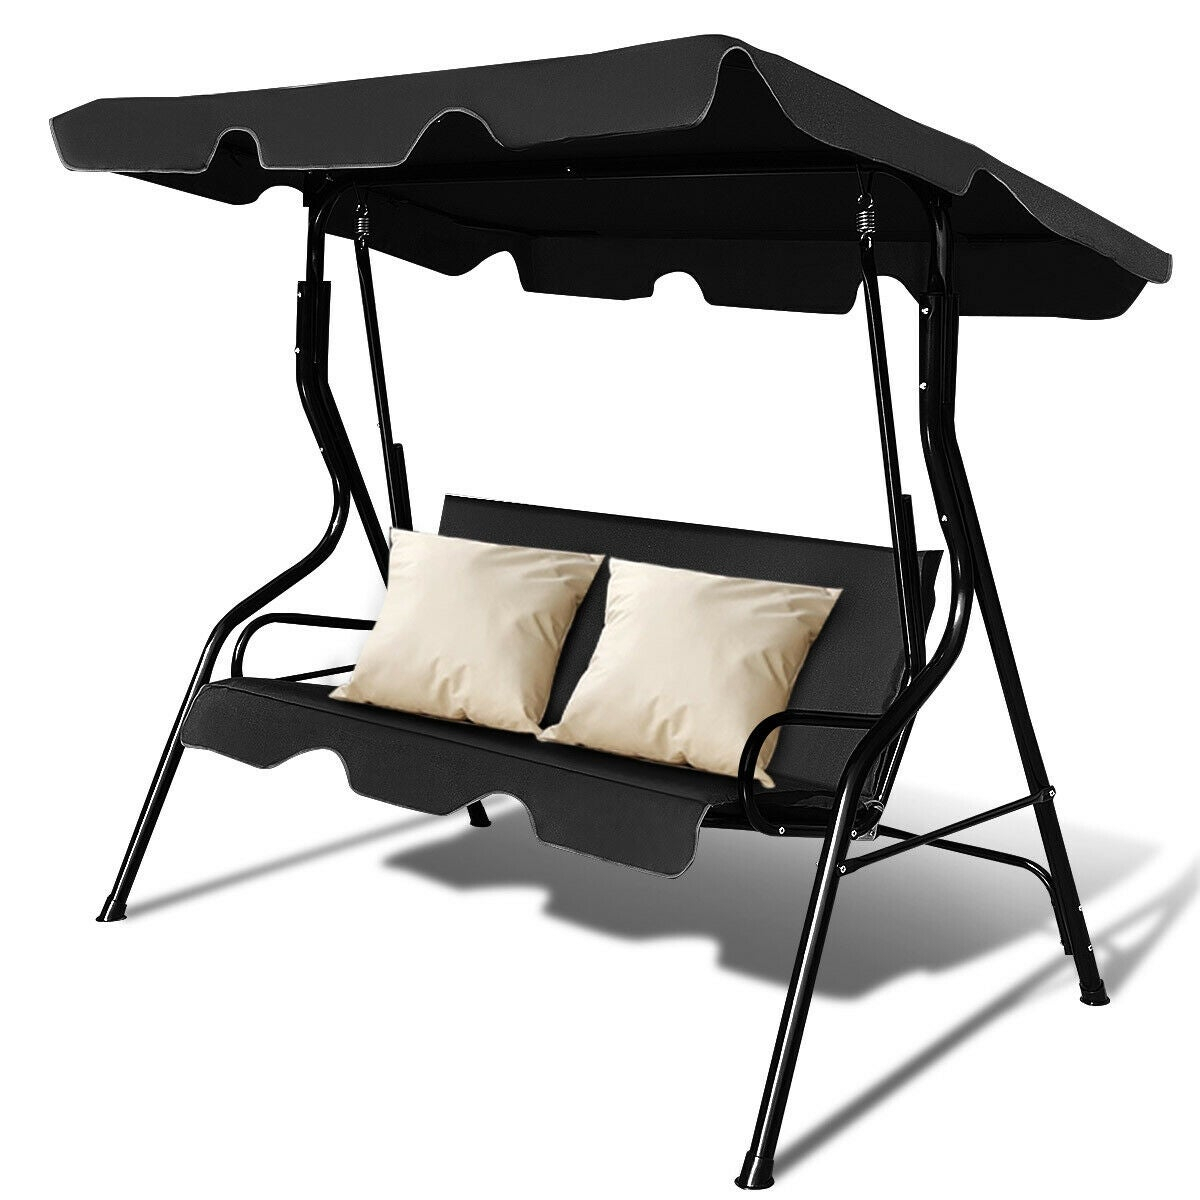 Canopy Swings Coffee Outsunny 3 Seater Outdoor Garden Patio Intended For Black Steel Patio Swing Glider Benches Powder Coated (Image 4 of 25)